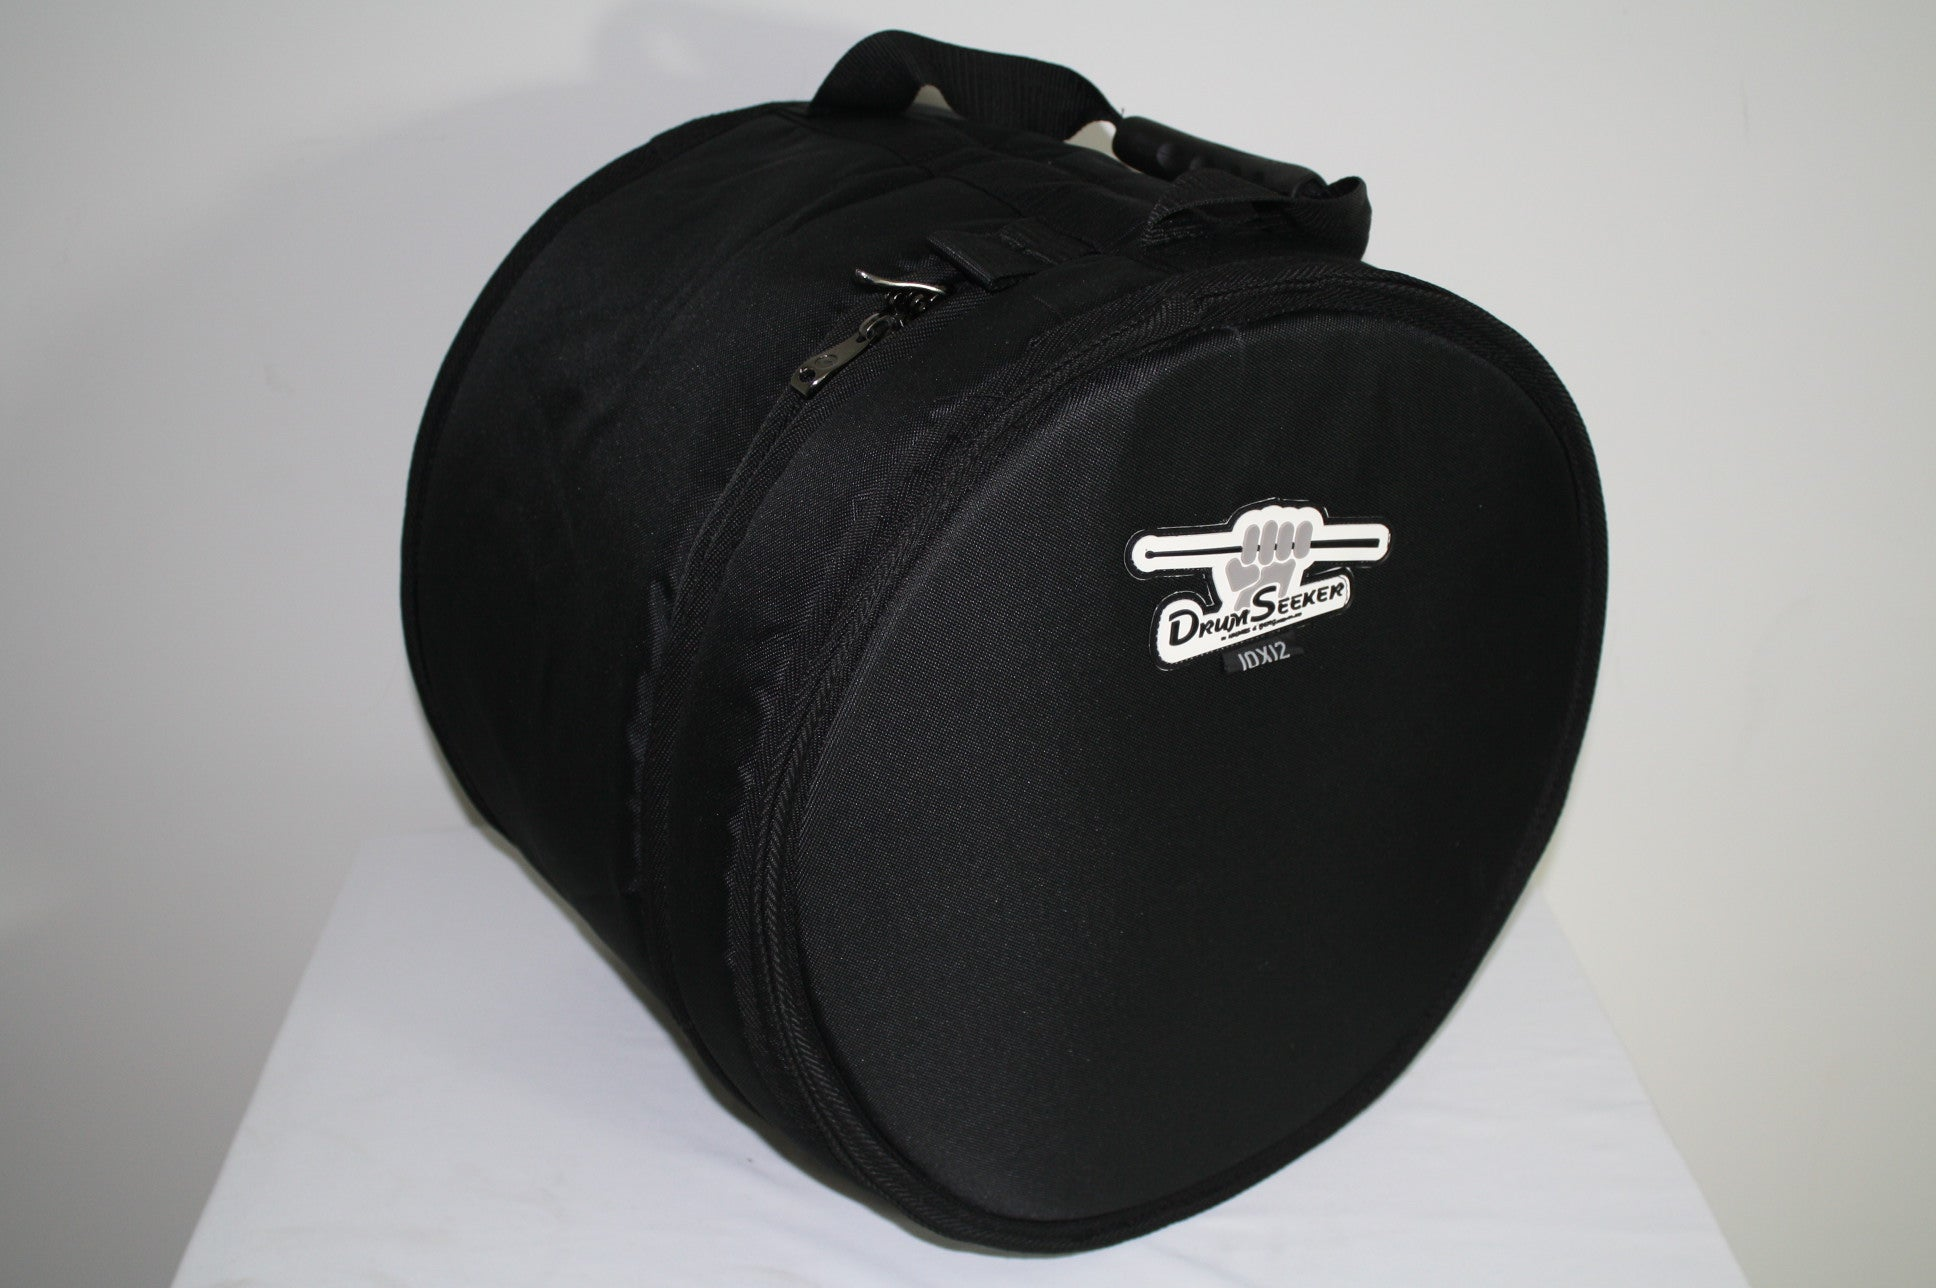 H&B  Drum Seeker 8 x 10 Inches Tom Drum Bag